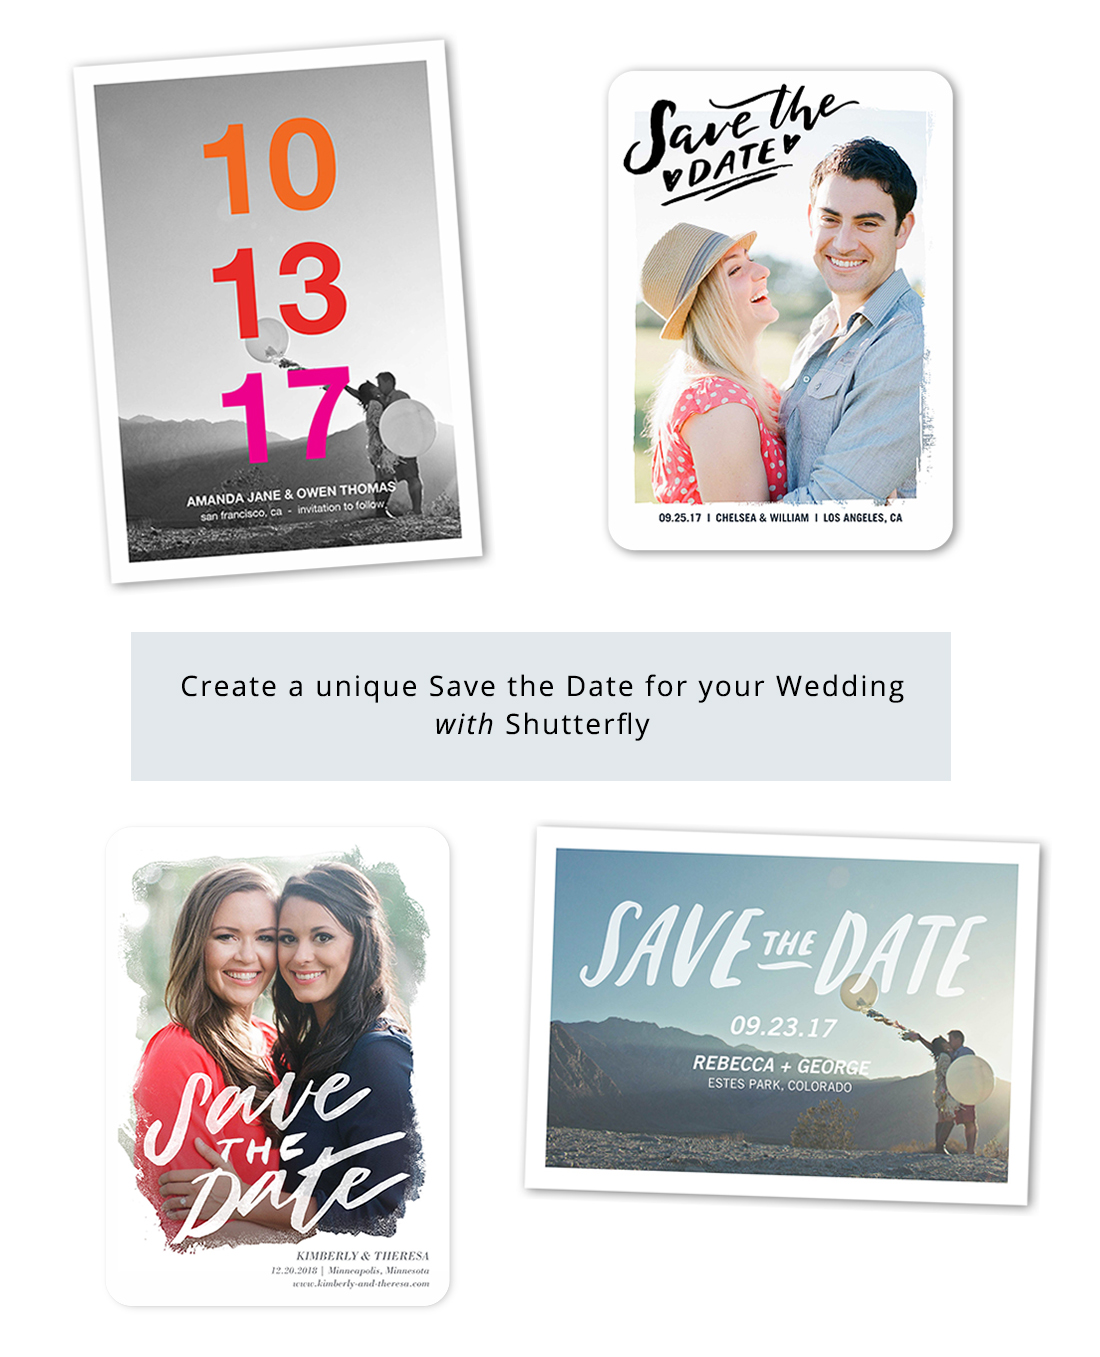 Save the Dates for Your Wedding from Shutterfly